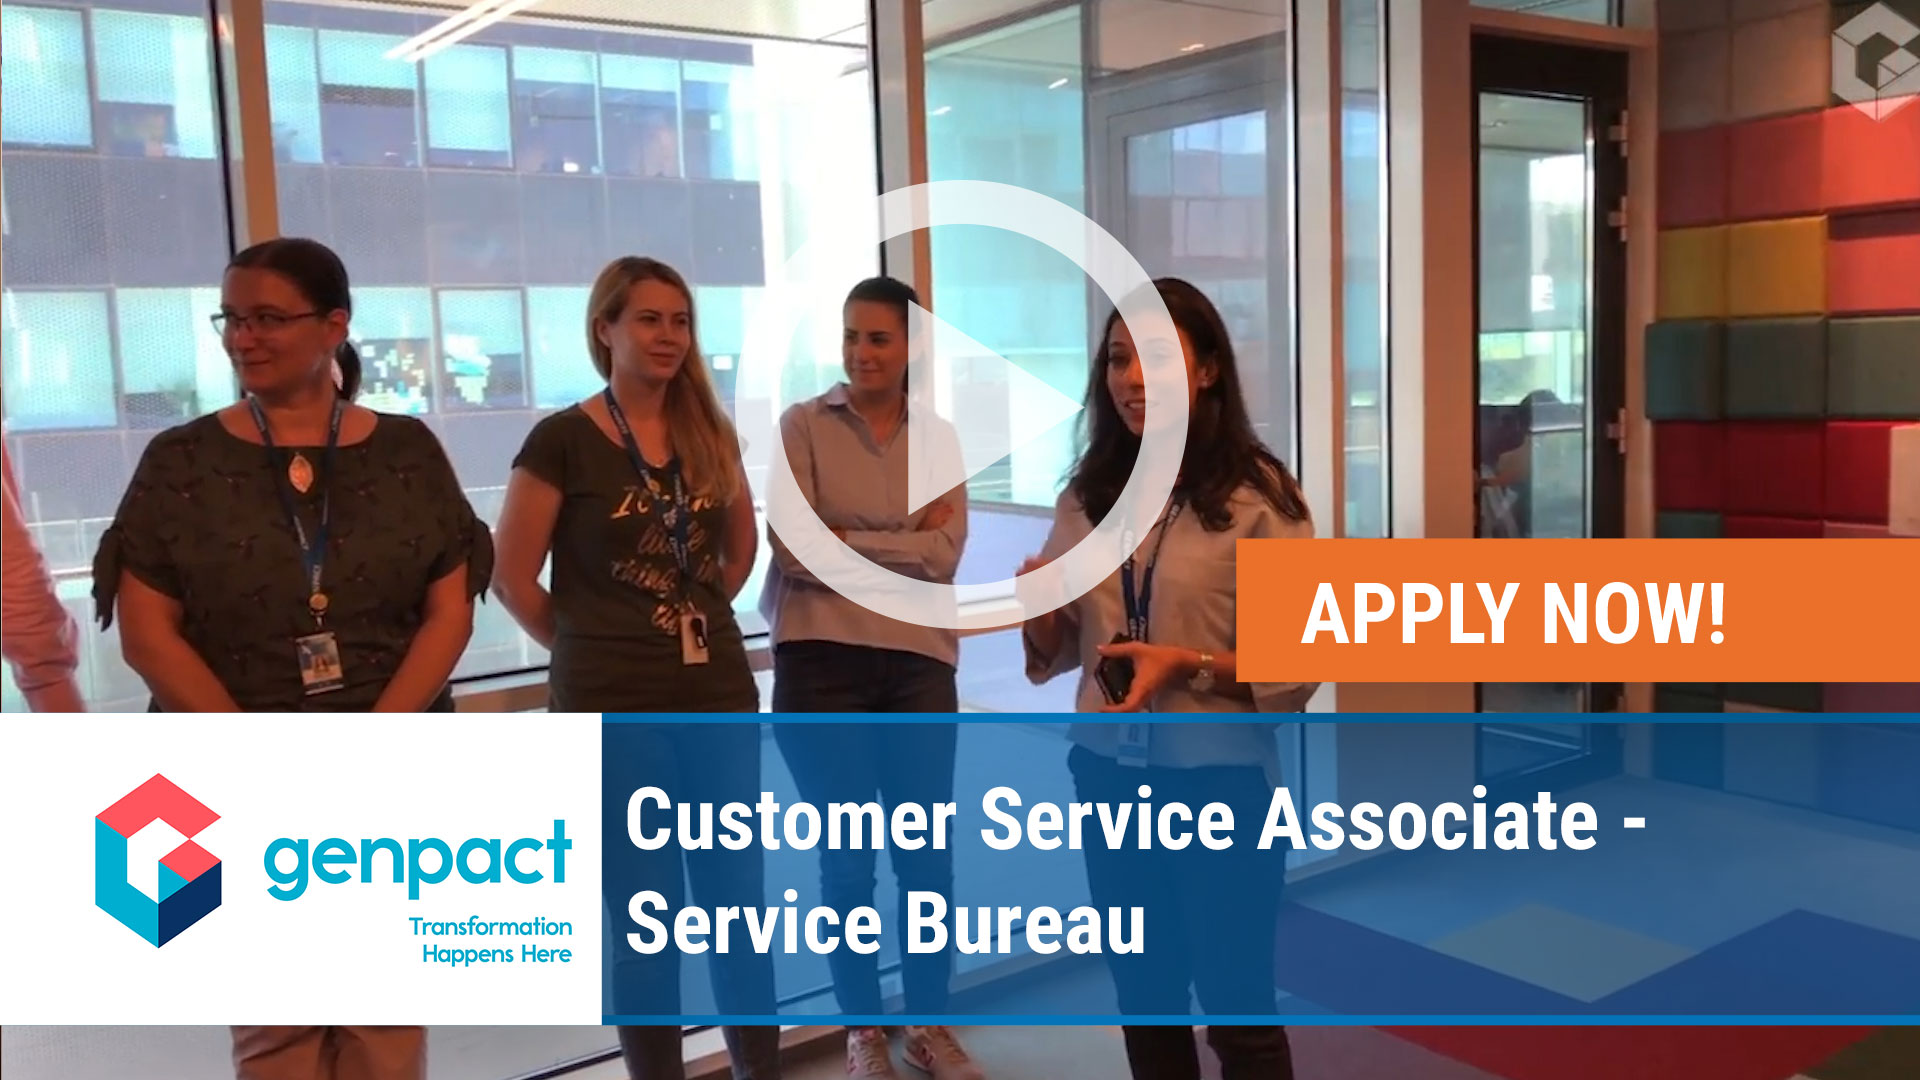 Watch our careers video for available job opening Customer Service Associate – Service Bureau in Wilkes-Barre, Pennsylvania